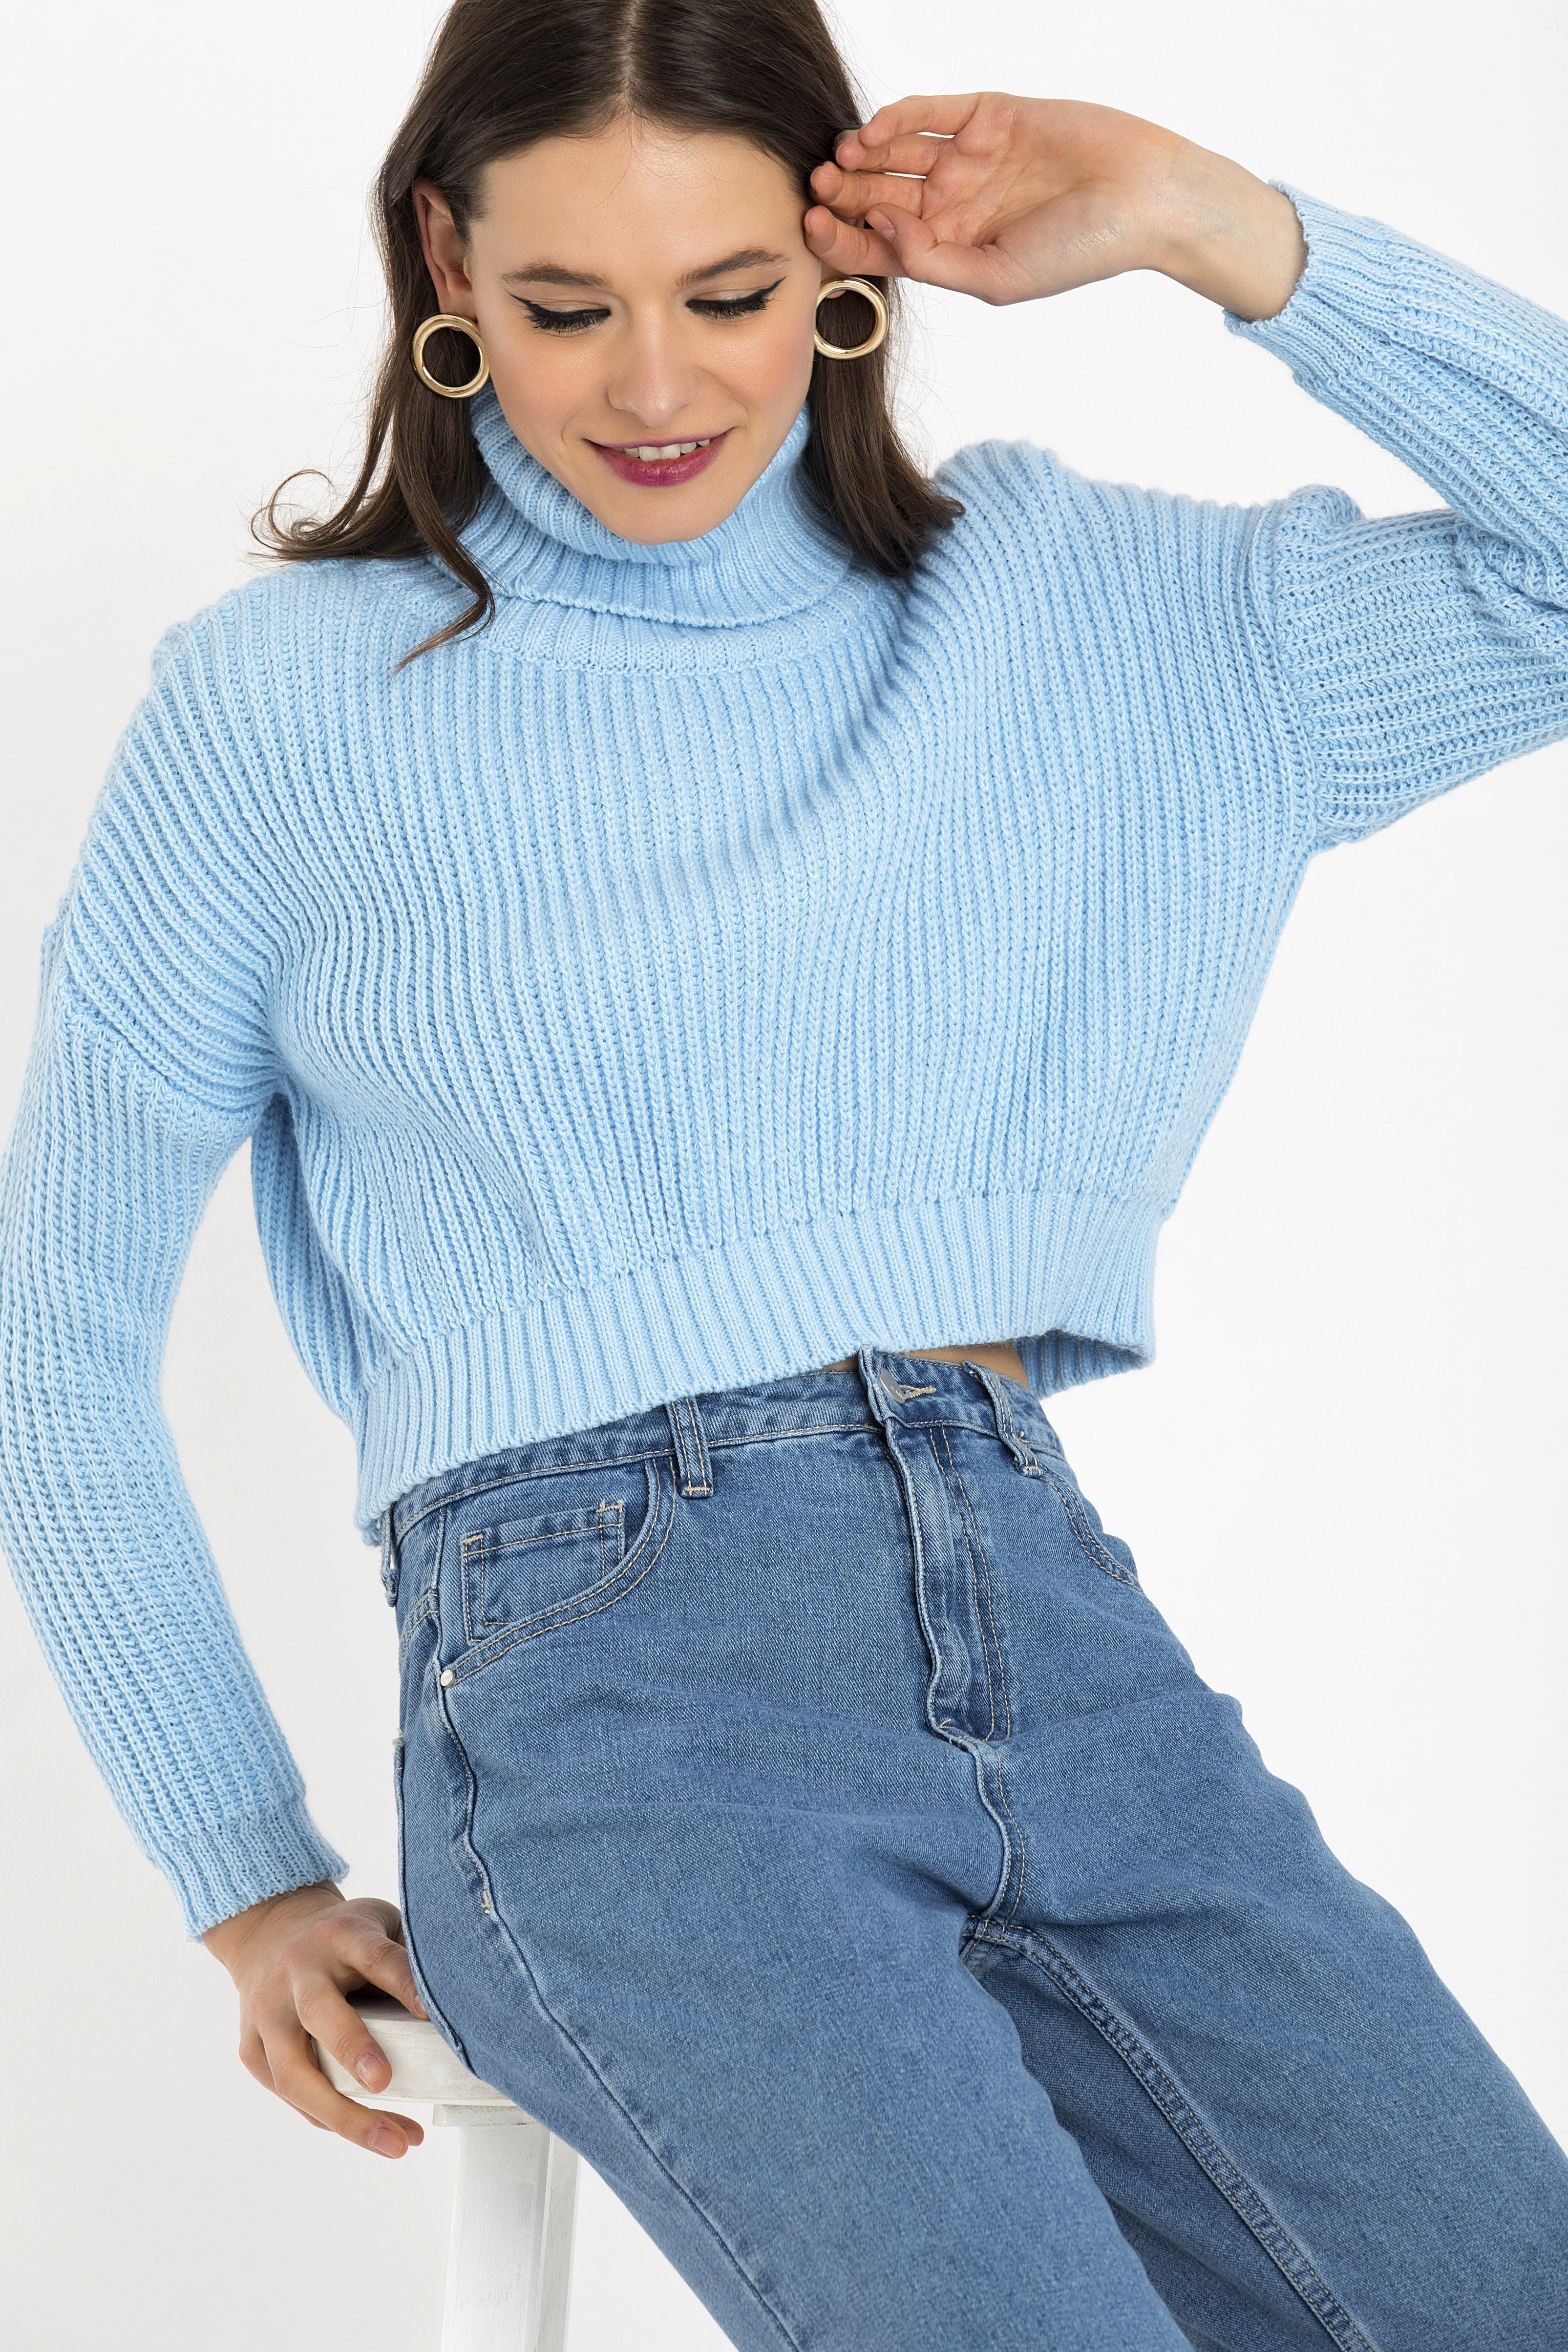 CROPPED ΠΟΥΛΟΒΕΡ - Σιέλ clothes   tops   πουλόβερ